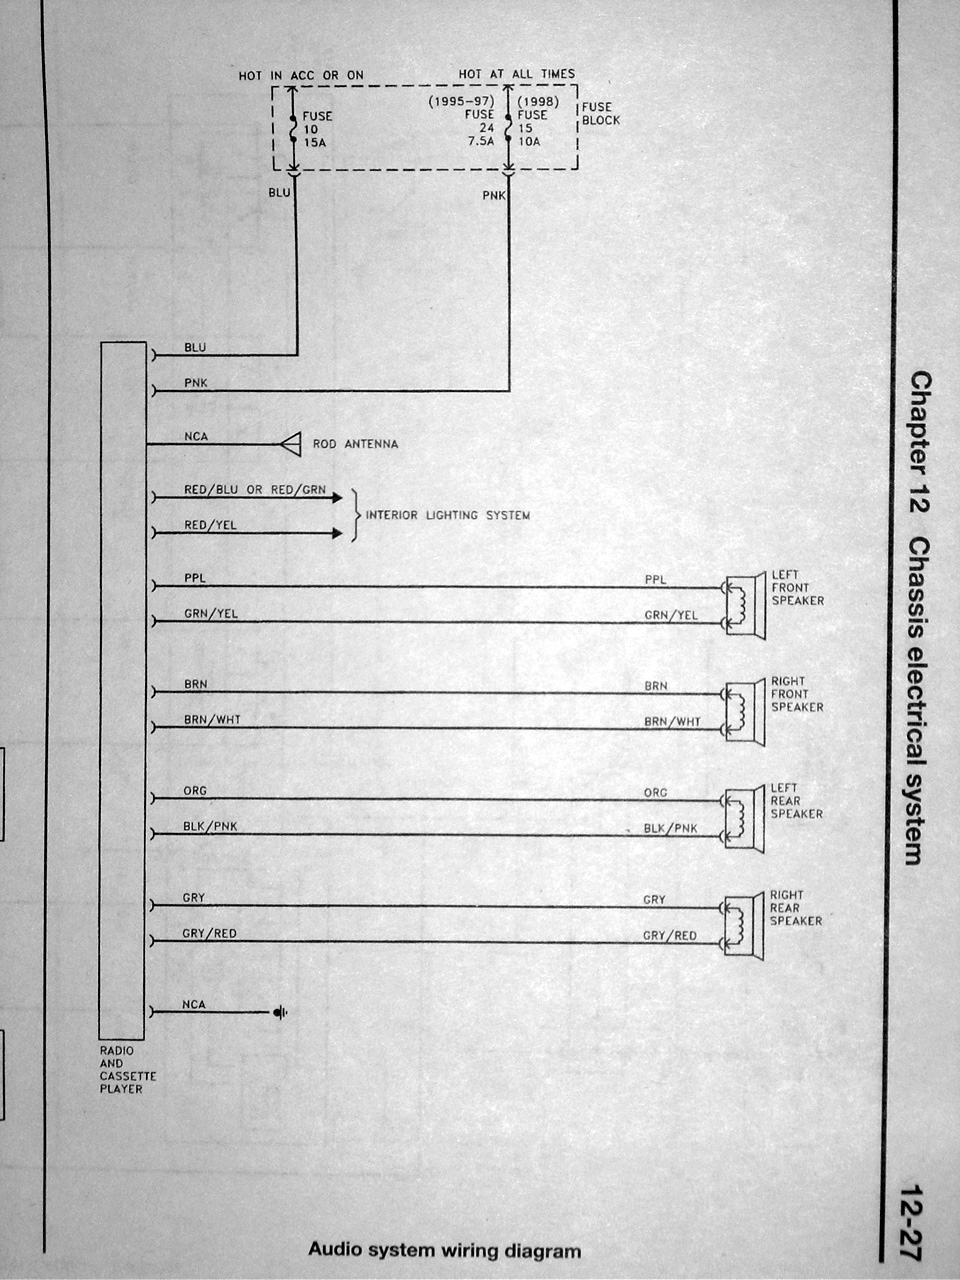 DSC01849 wiring diagram thread *useful info* nissan forum 2004 nissan maxima radio wiring diagram at aneh.co